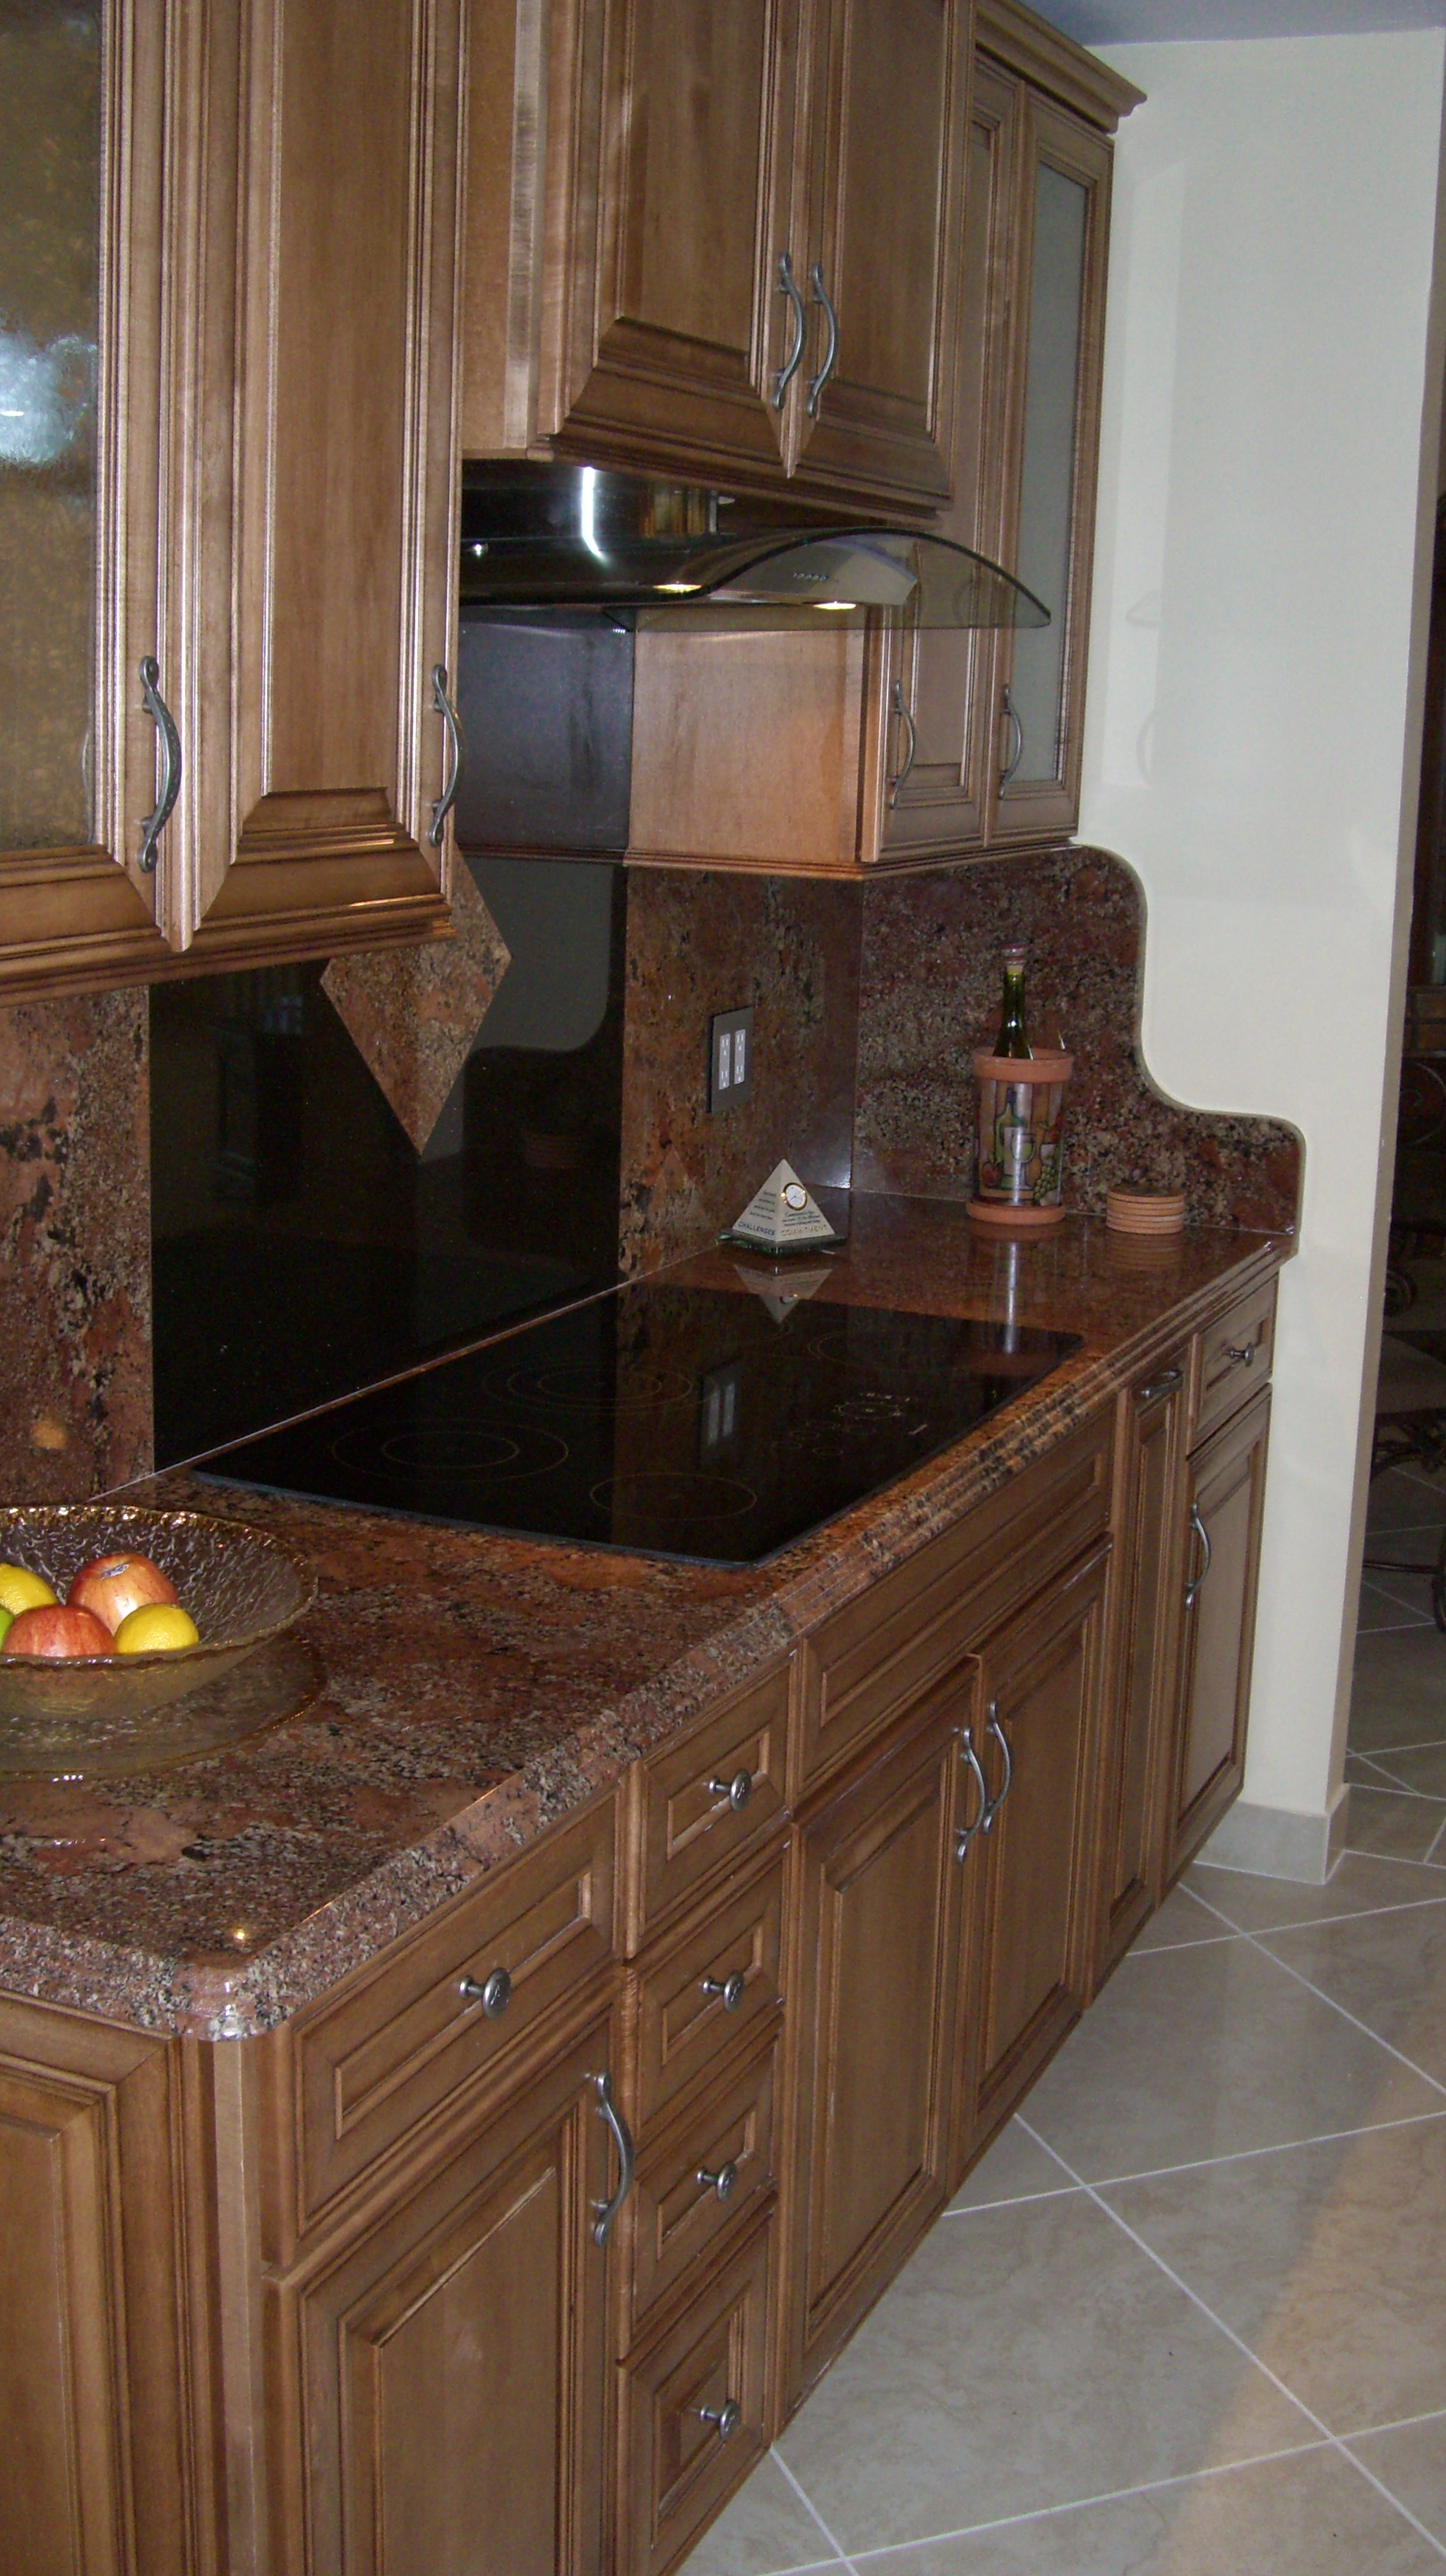 Marble countertop with stove